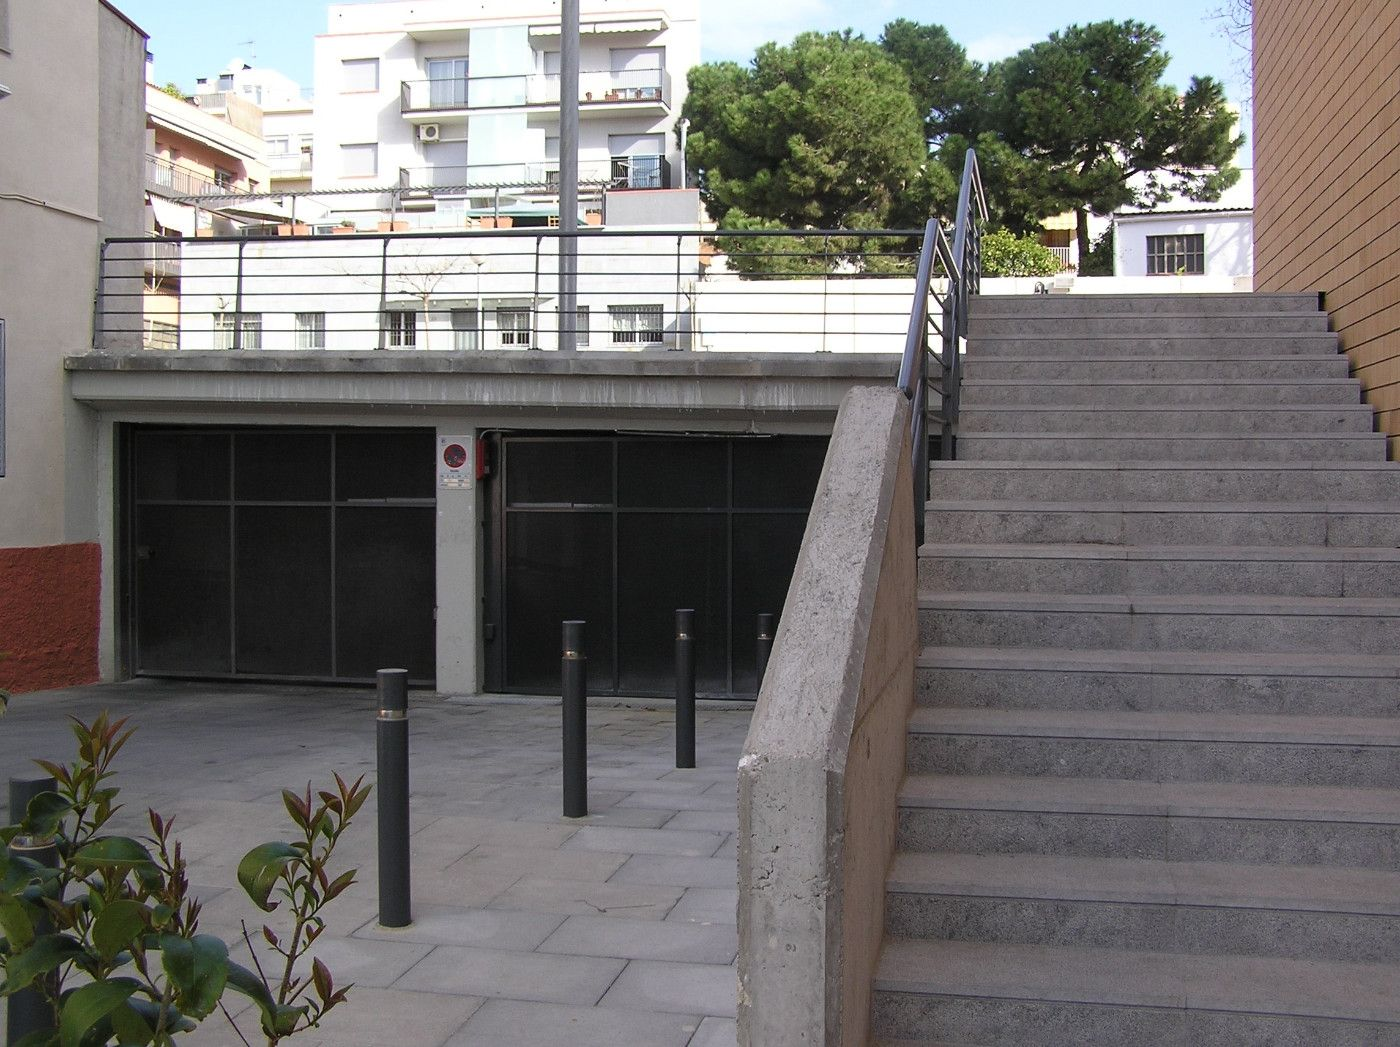 Car parking in Carrer solis, 23. Plaça d´aparcament en concessió